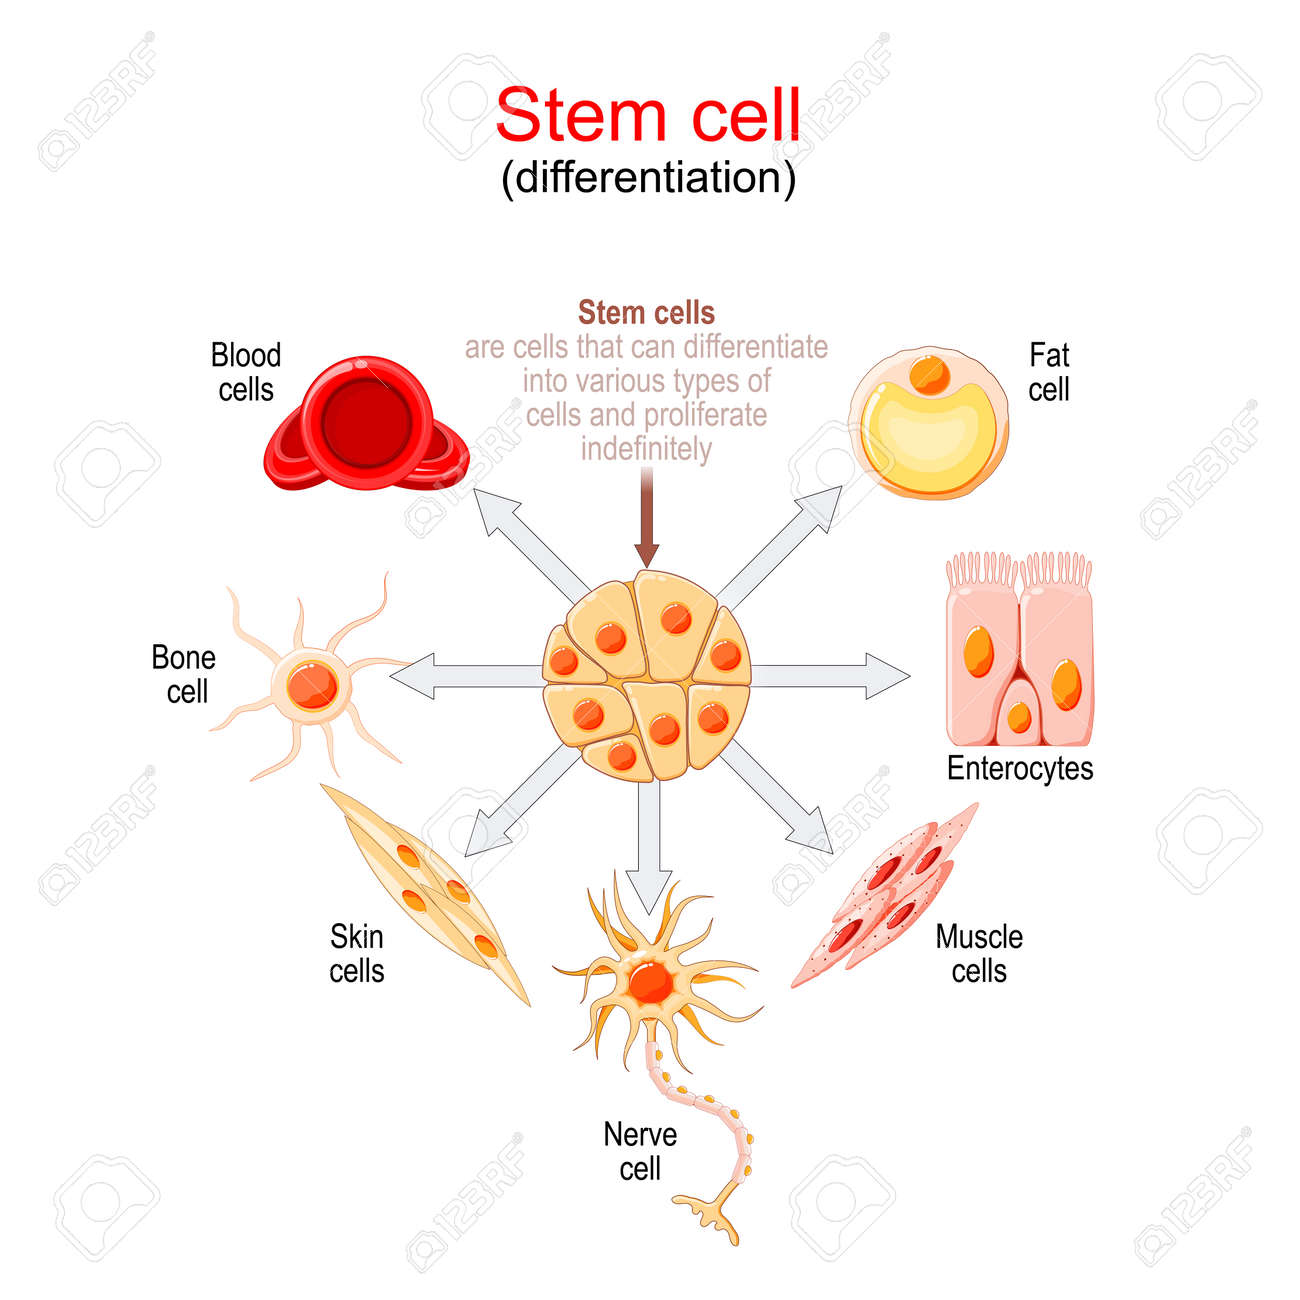 Stem cell differentiation. Stem cells are cells that can differentiate into various types of cells and proliferate indefinitely. - 173454200